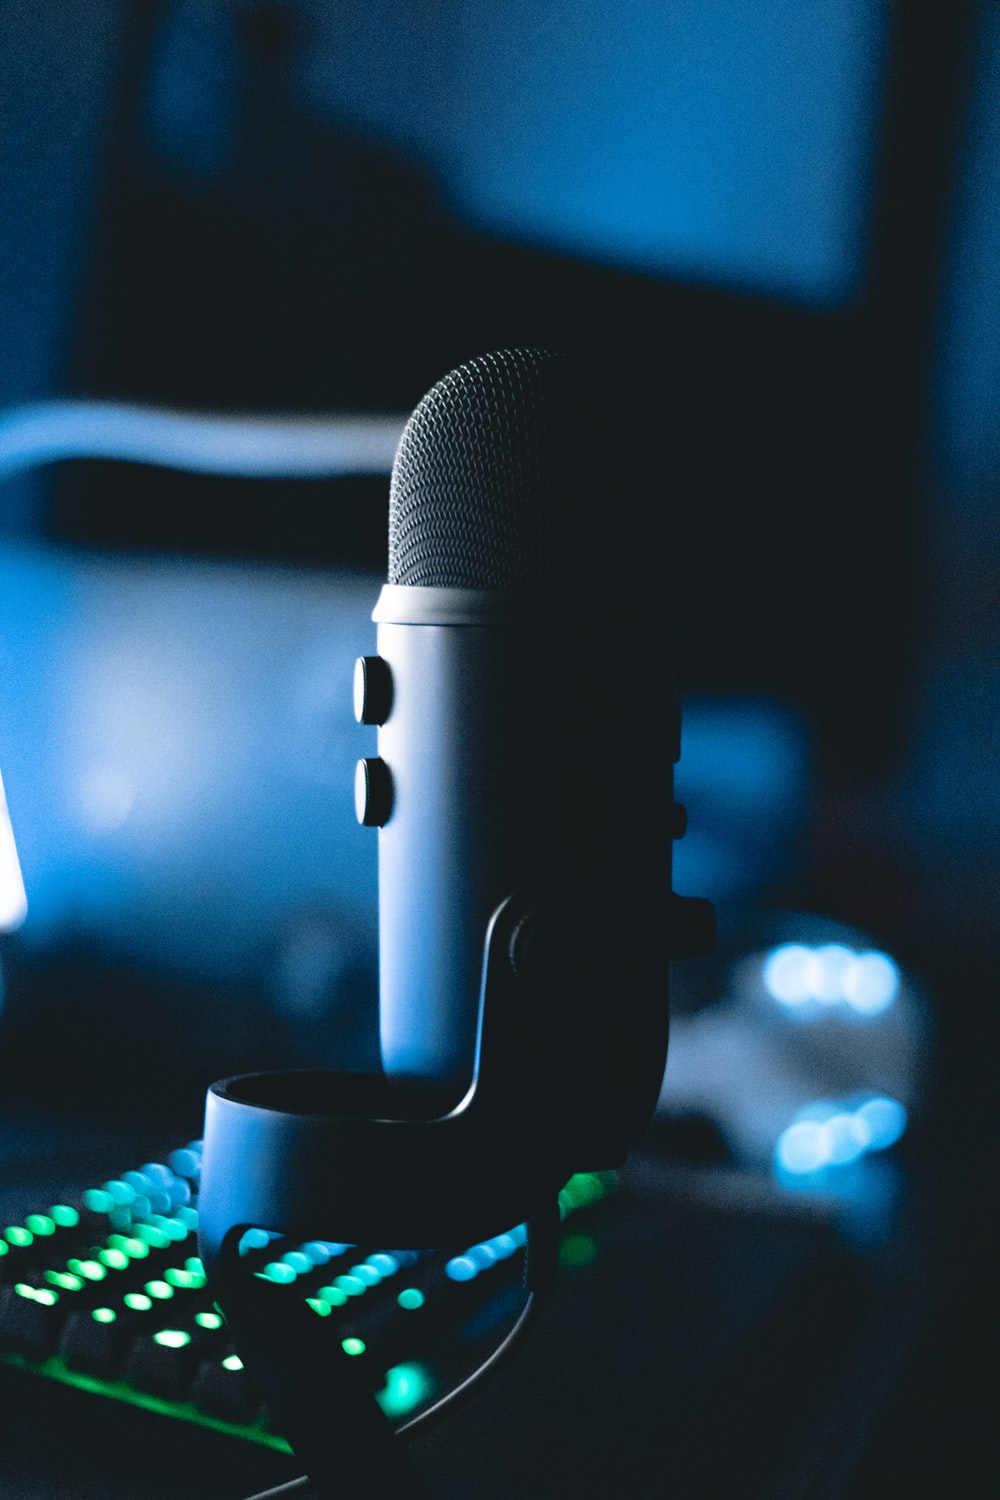 black microphone on blue and white polka dot textile